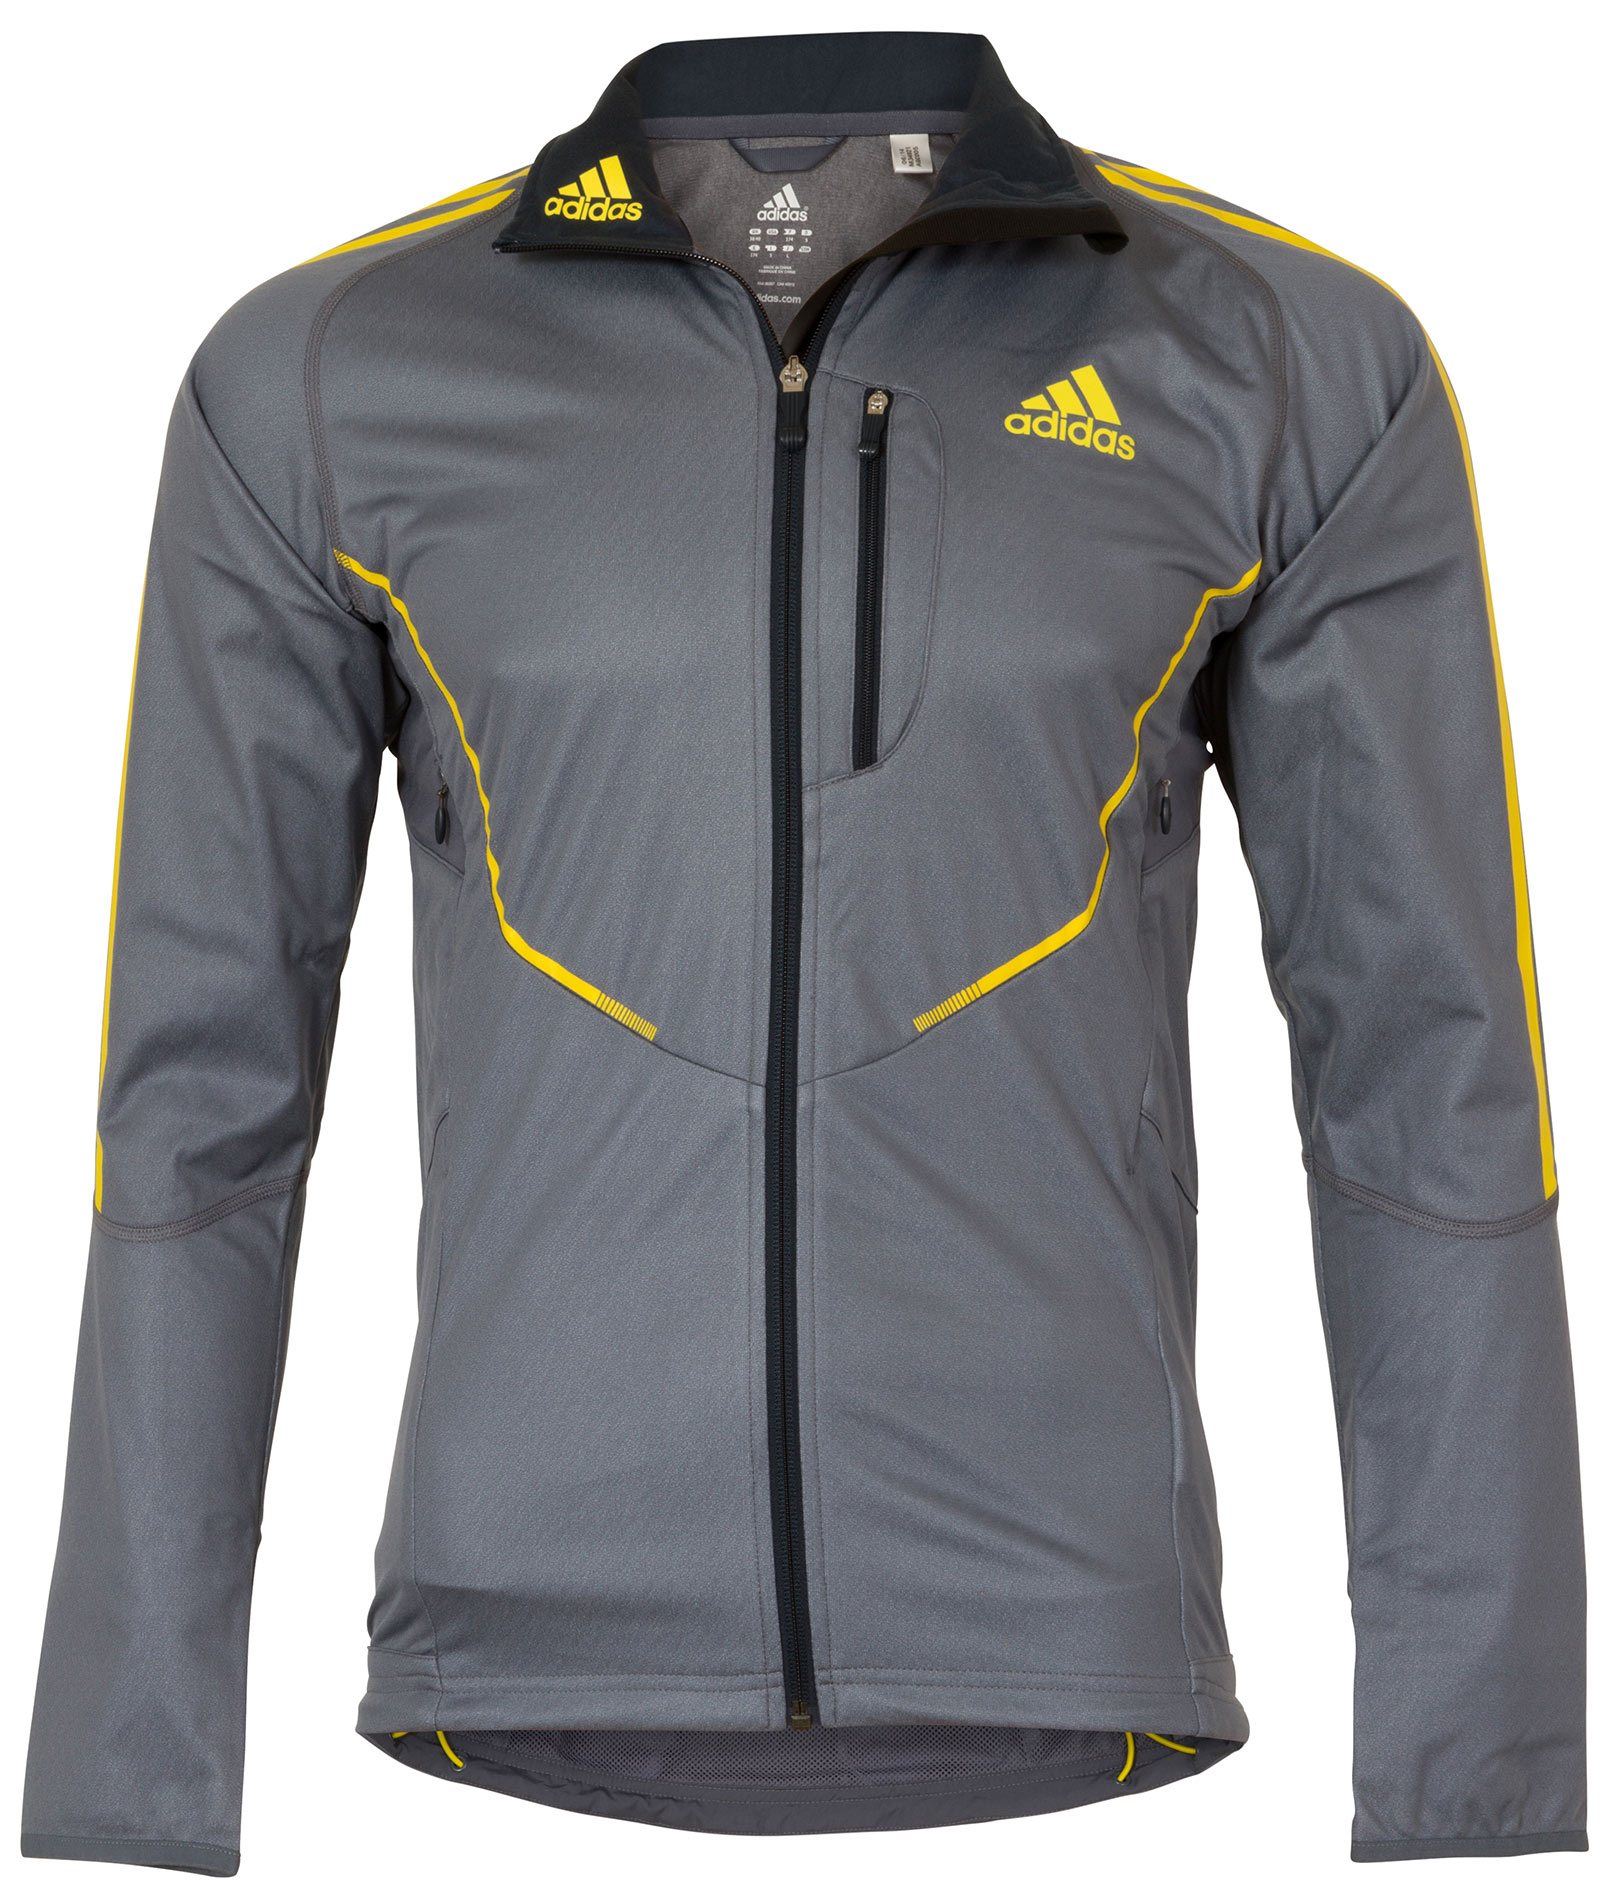 All Athletics Climawarm Windstopper Country Jacket Mens Adidas Cross 7Y6gfby